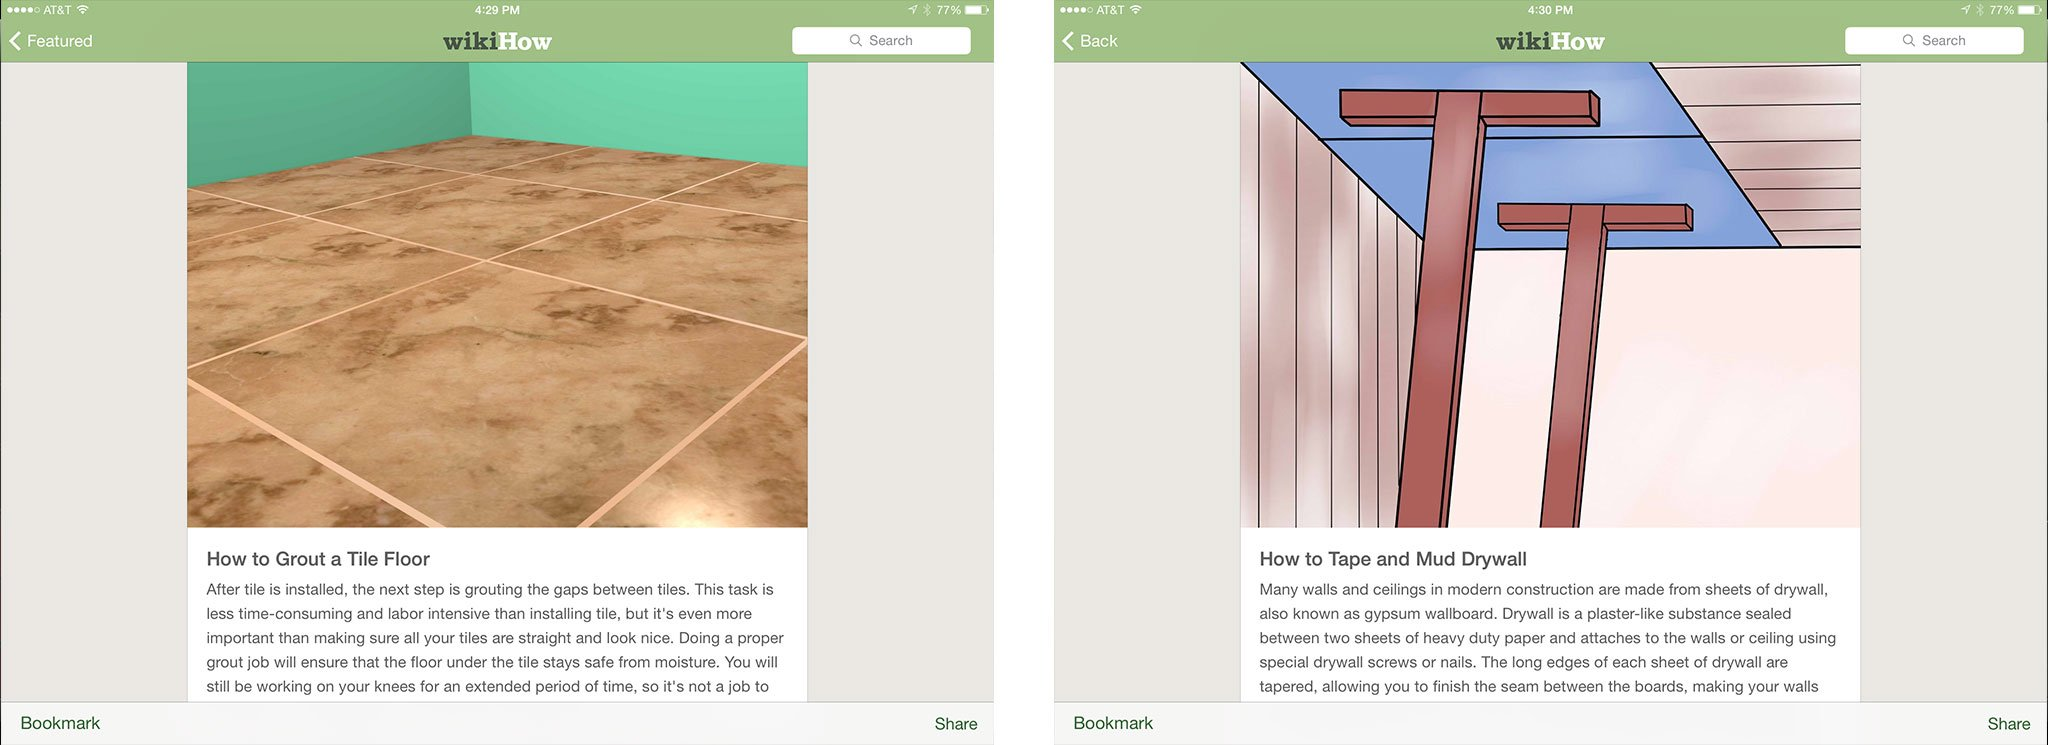 Best home design and improvement apps for iPad: wikiHow